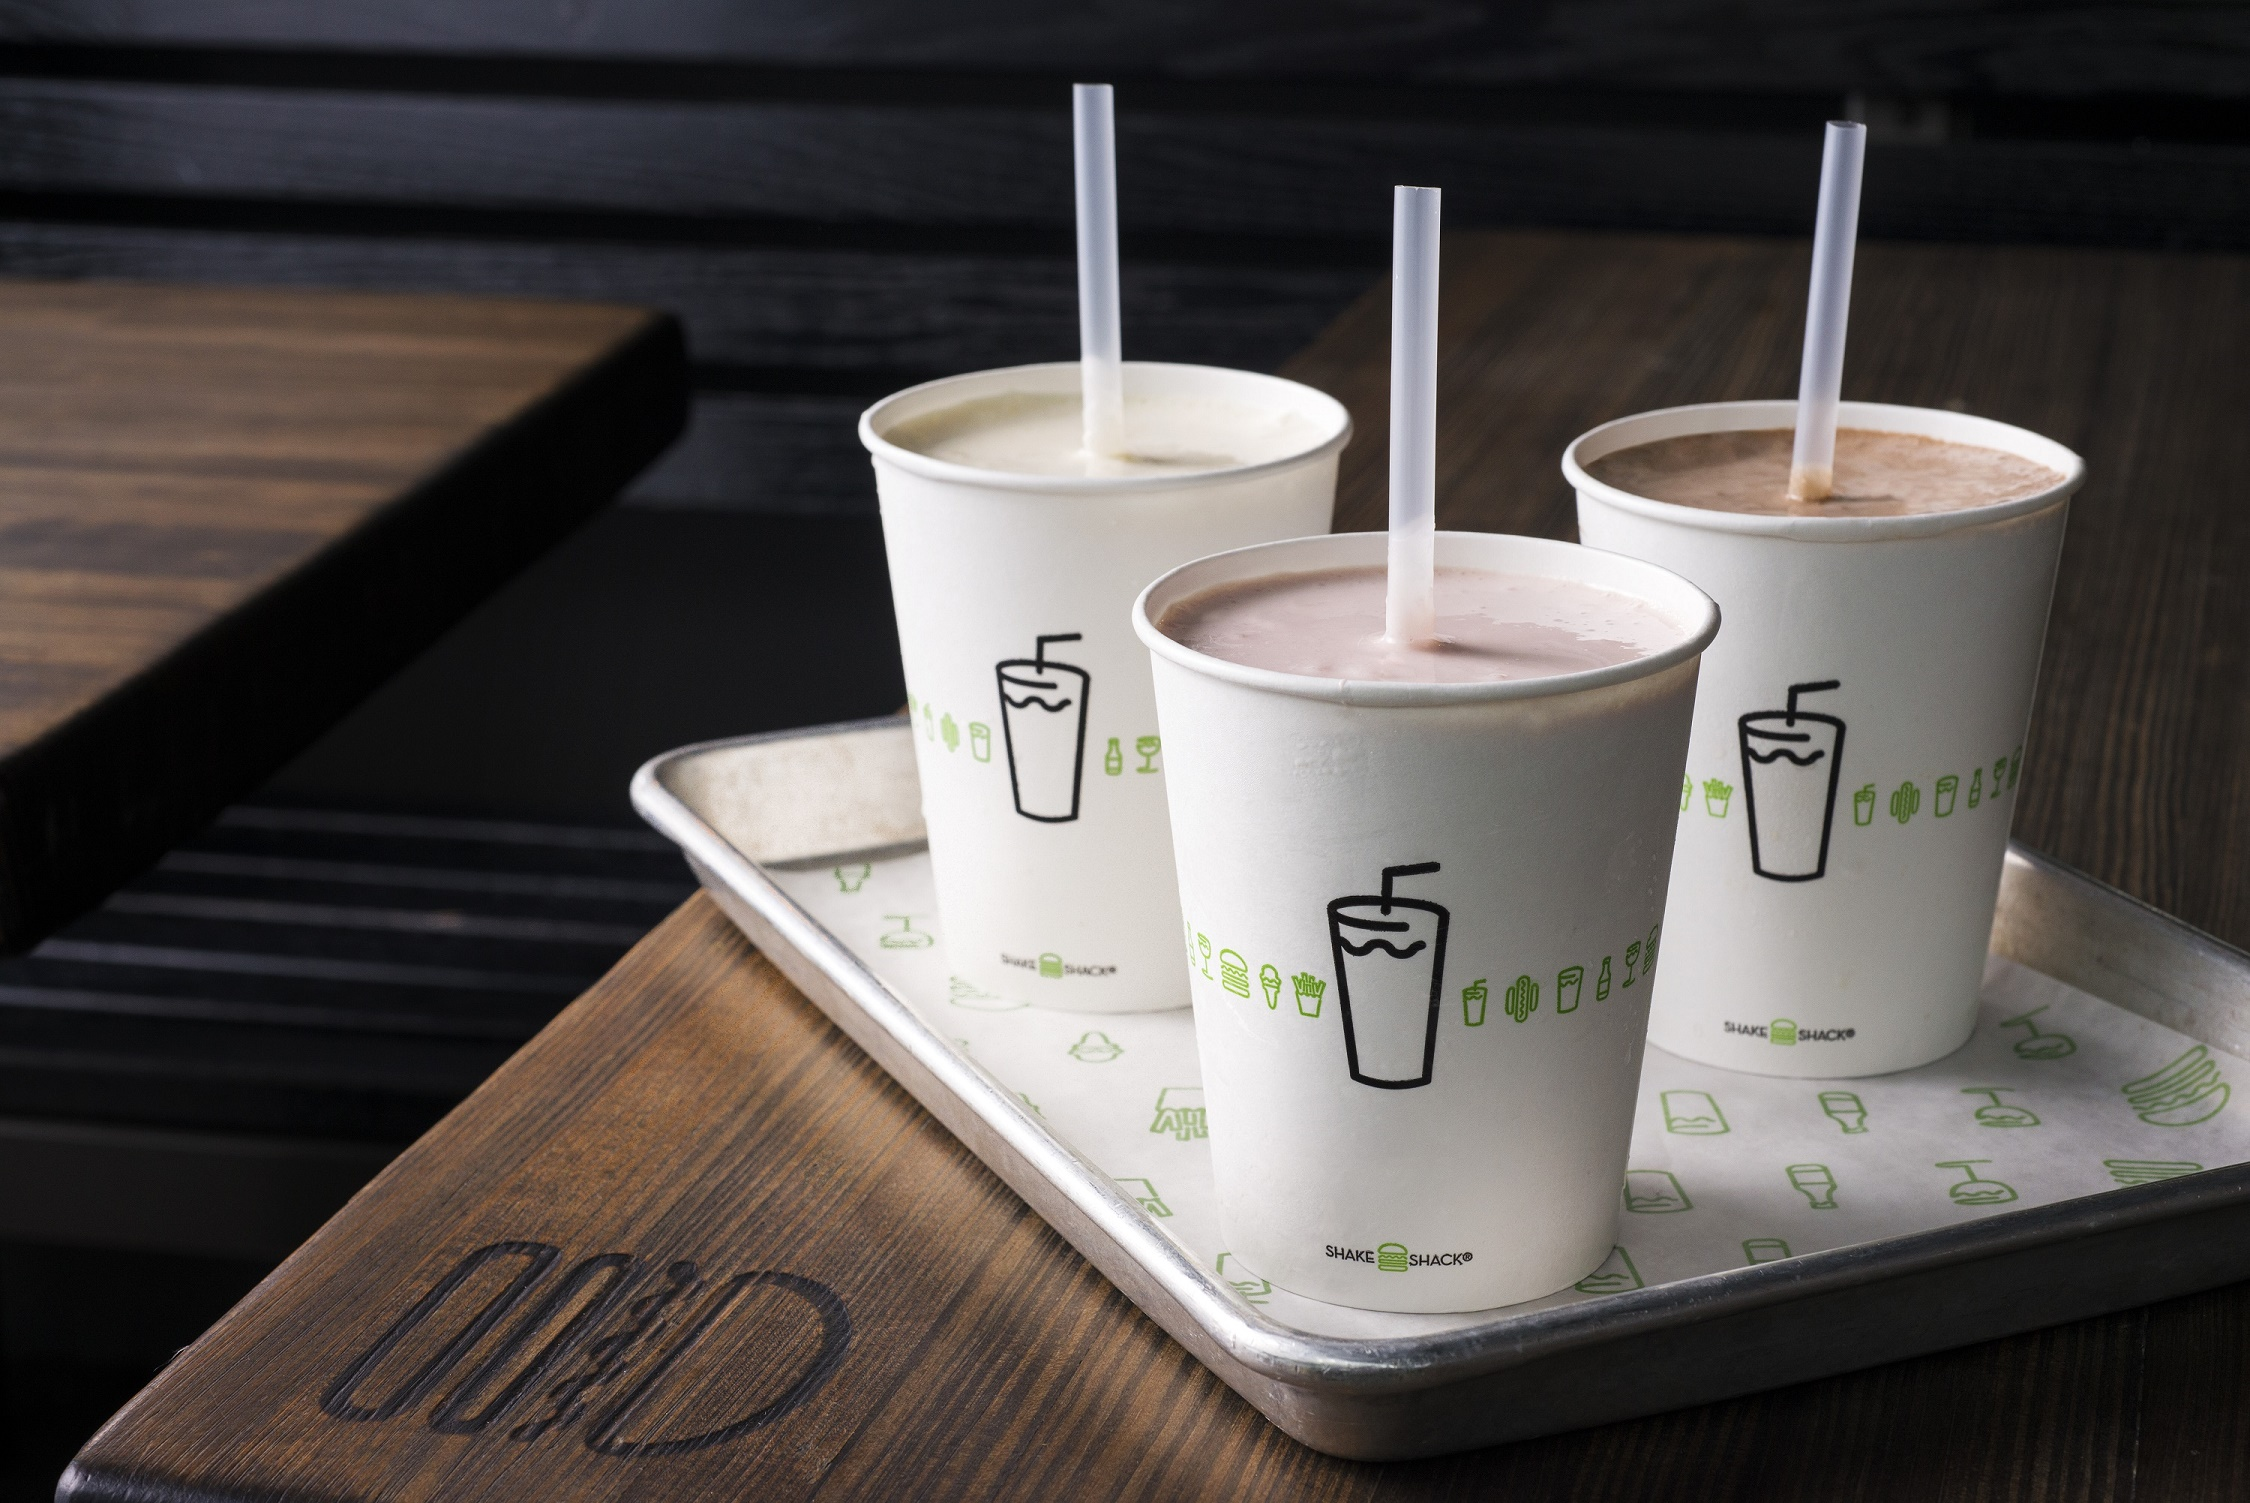 Bring a date and get a shake for Valentine's Day, photo courtesy of Shake Shack.